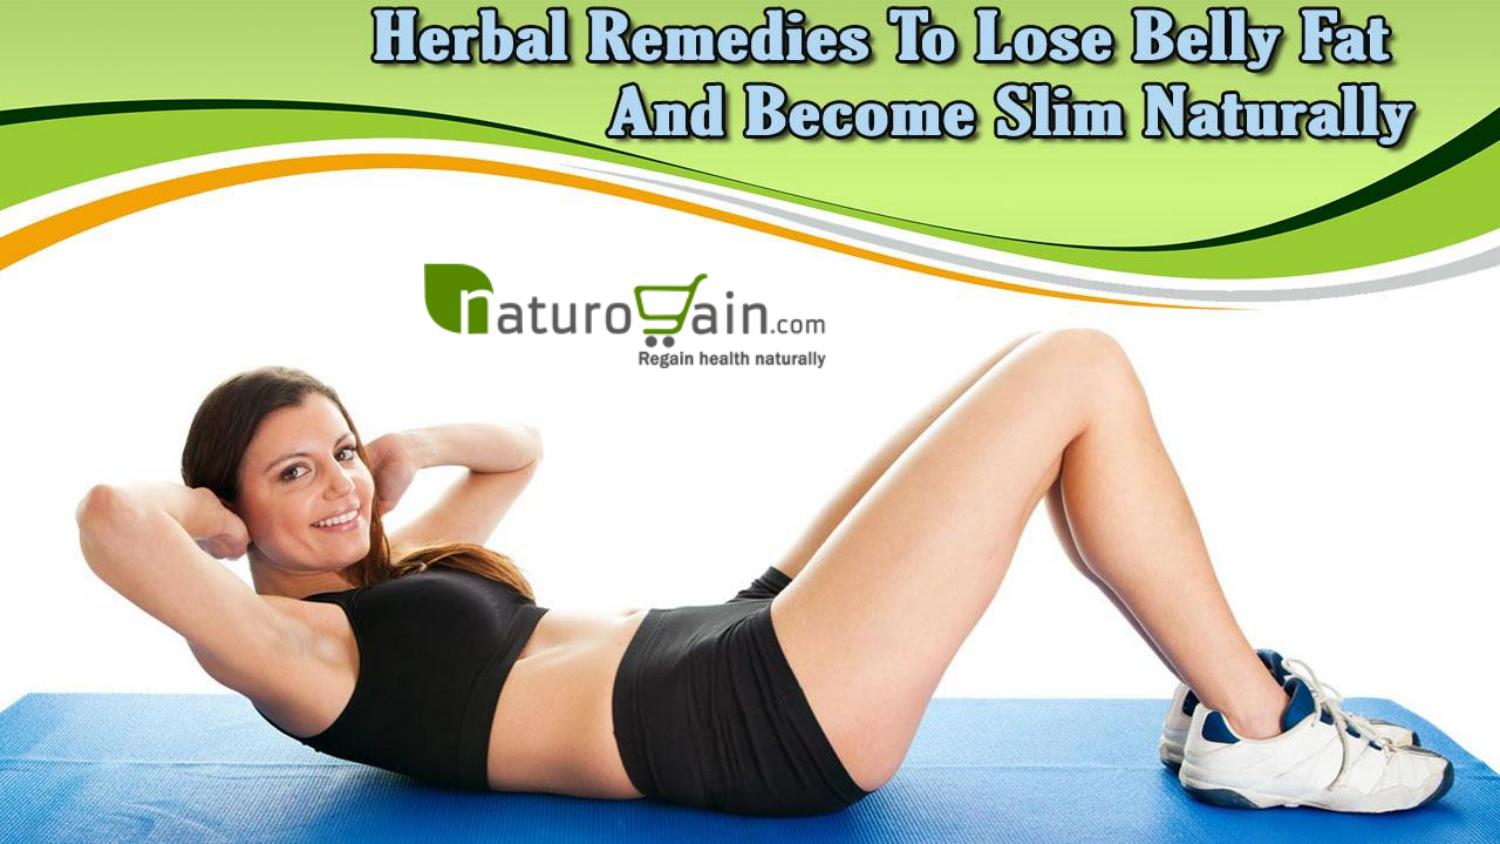 Herbal Remedies To Lose Belly Fat And Become Slim Naturally By Jarvis Norwin Issuu